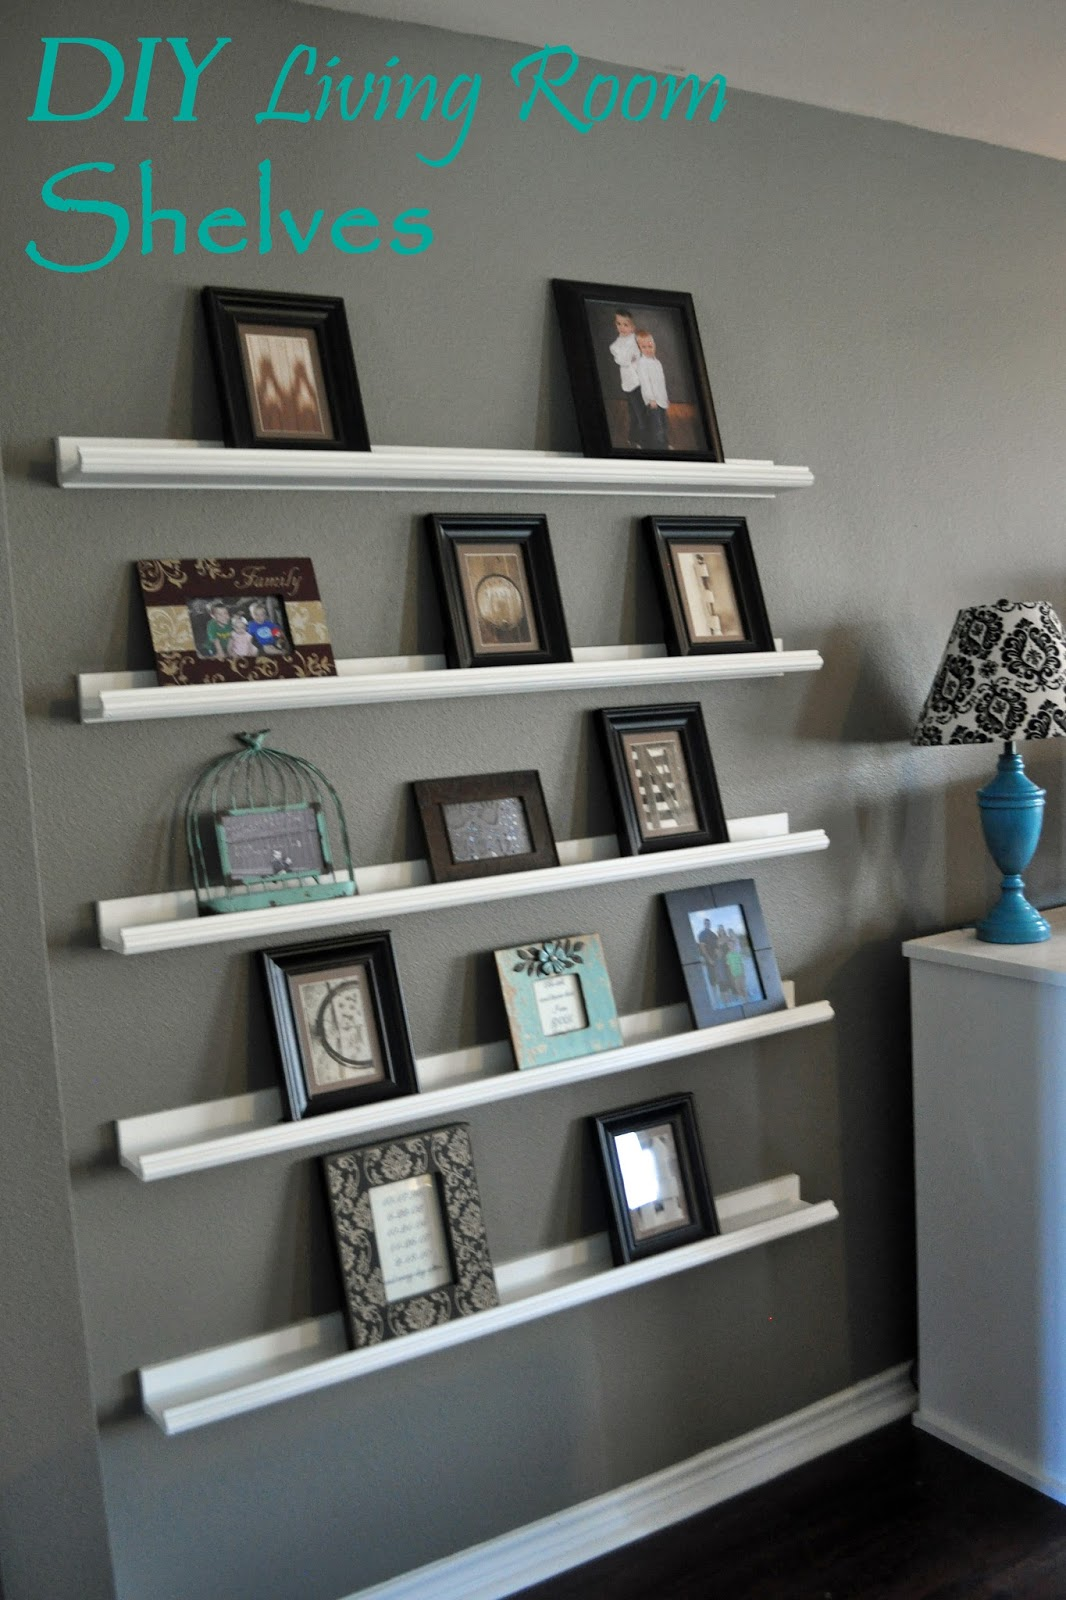 Diy Shelving For Picture Frames